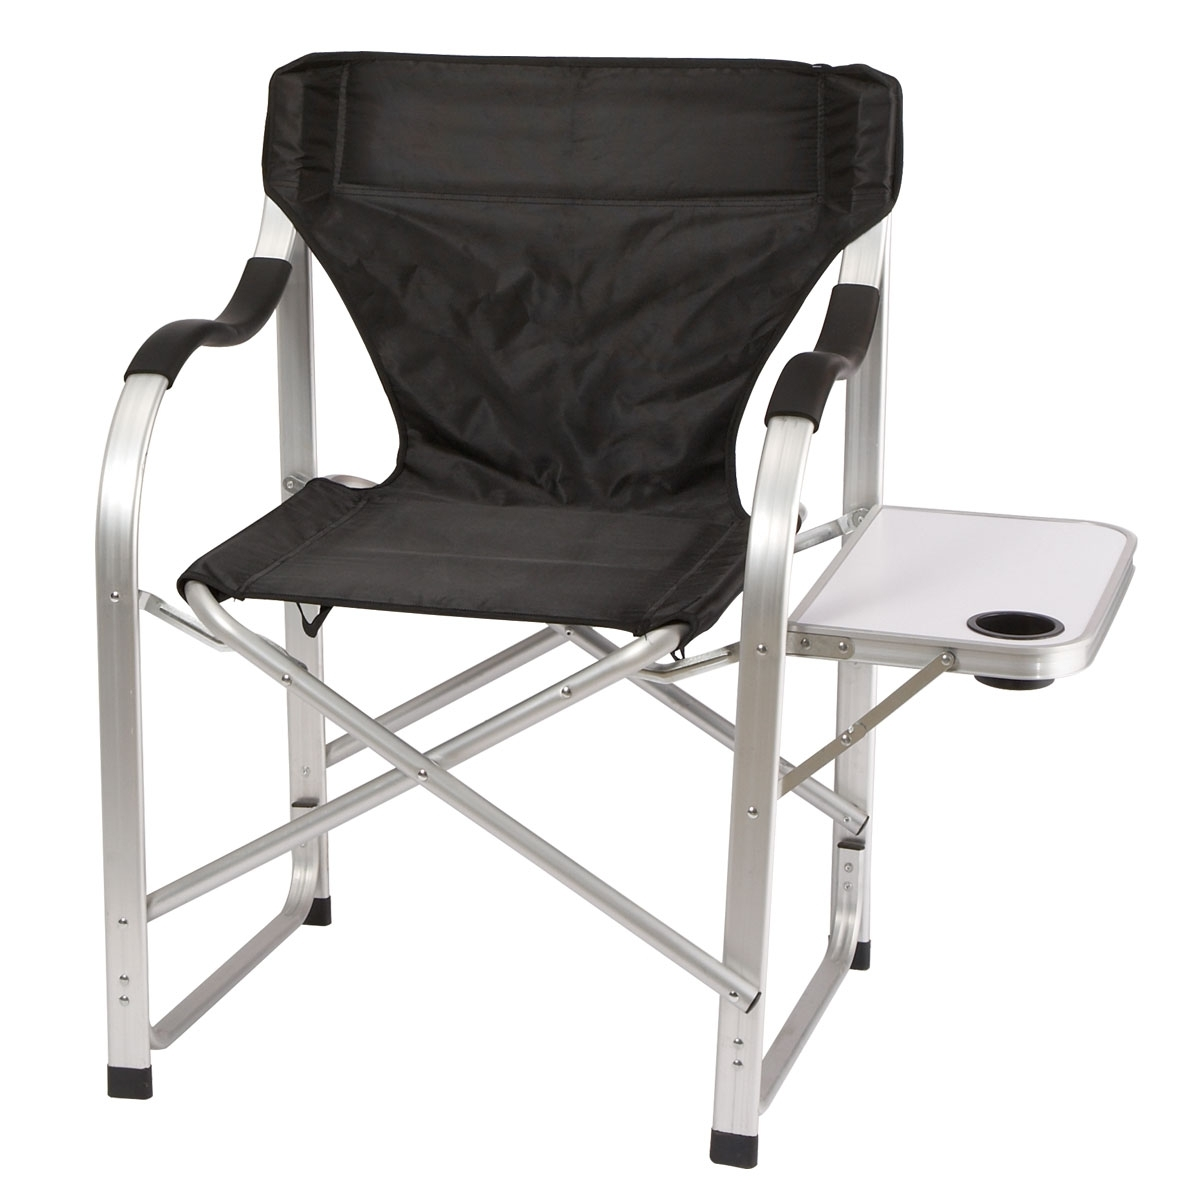 Heavy Duty Collapsible Lawn Chair (Black) – From Sportys Preferred With Current Lawn Chaises (View 4 of 15)